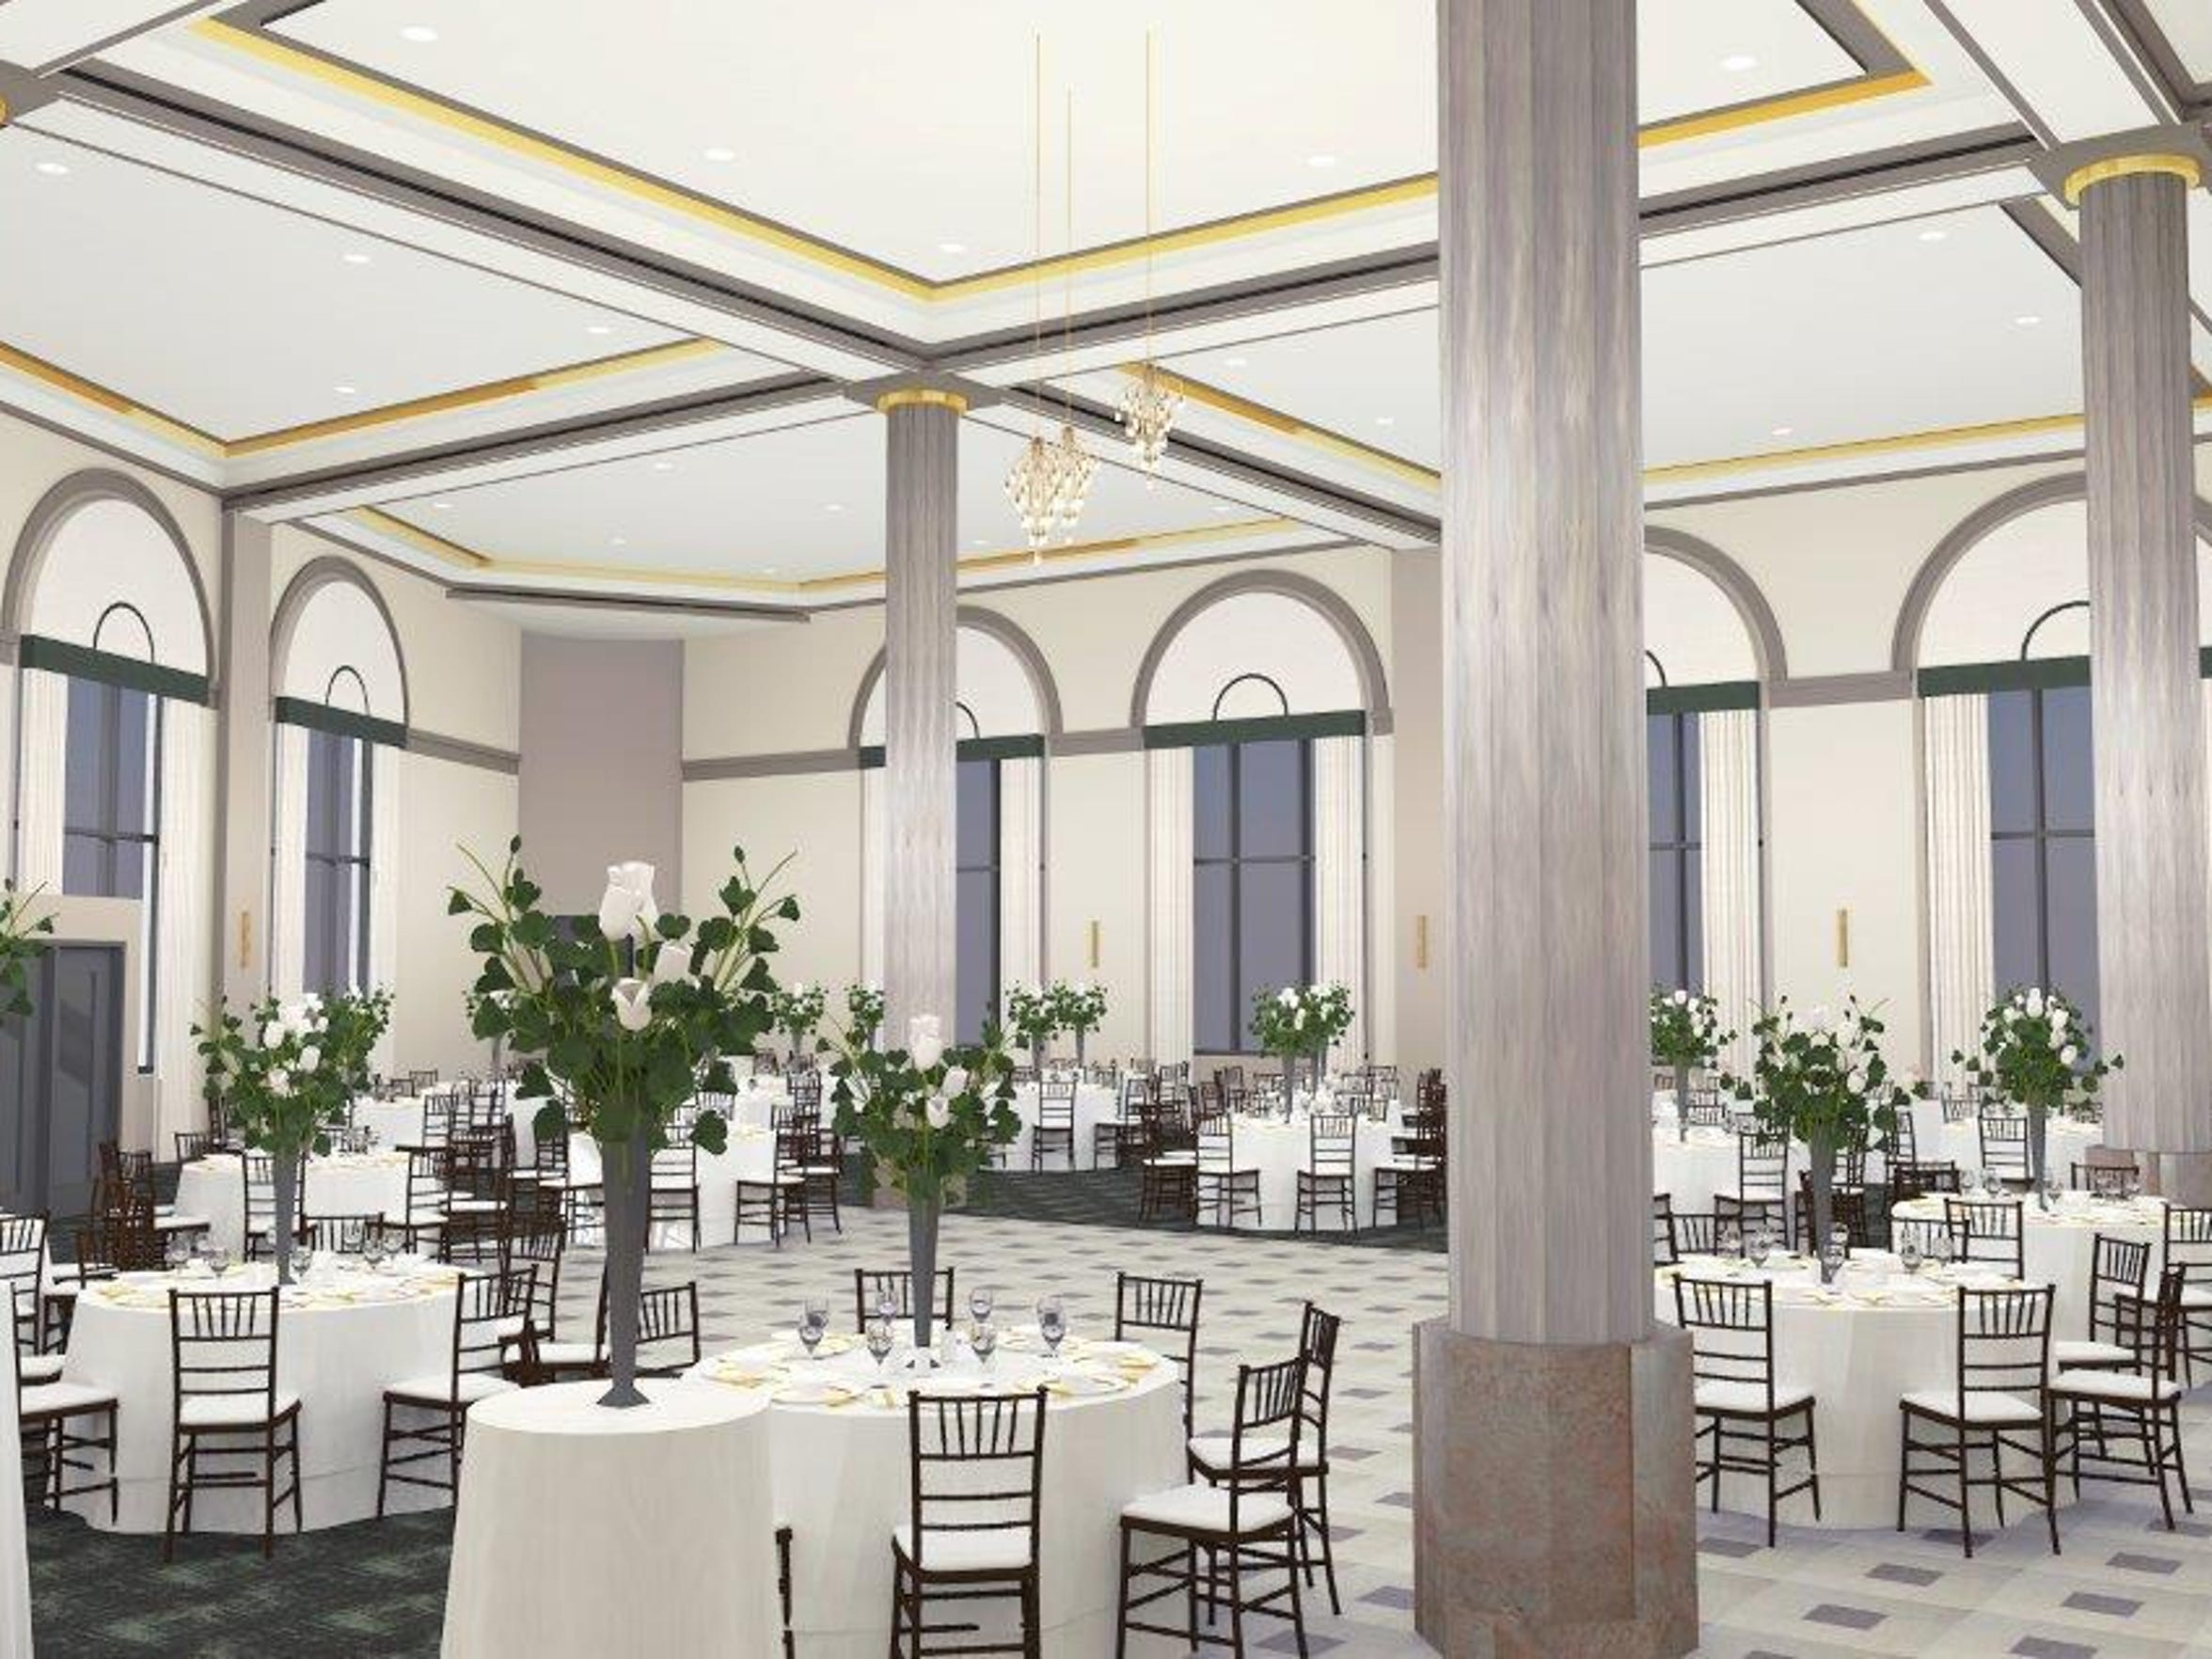 A rendering of plans for the ballroom at CityFlats, 800 Military St. It was not included in a recent tour with the Times Herald.